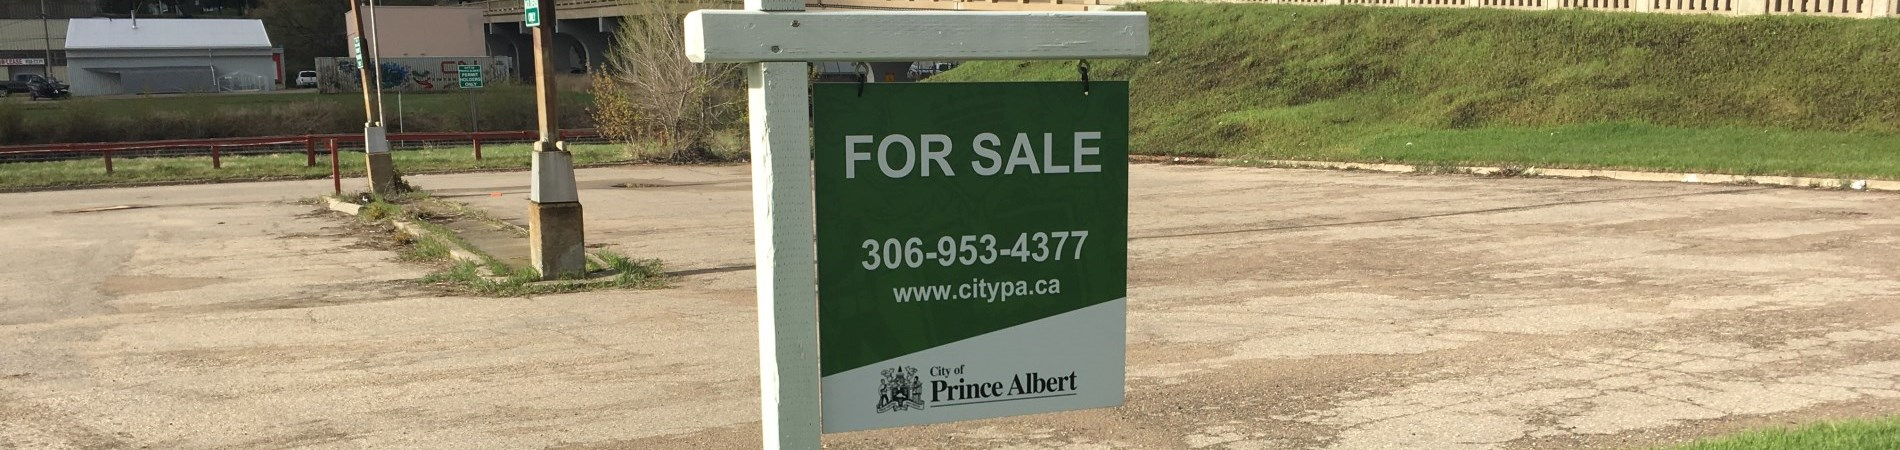 property sale sign